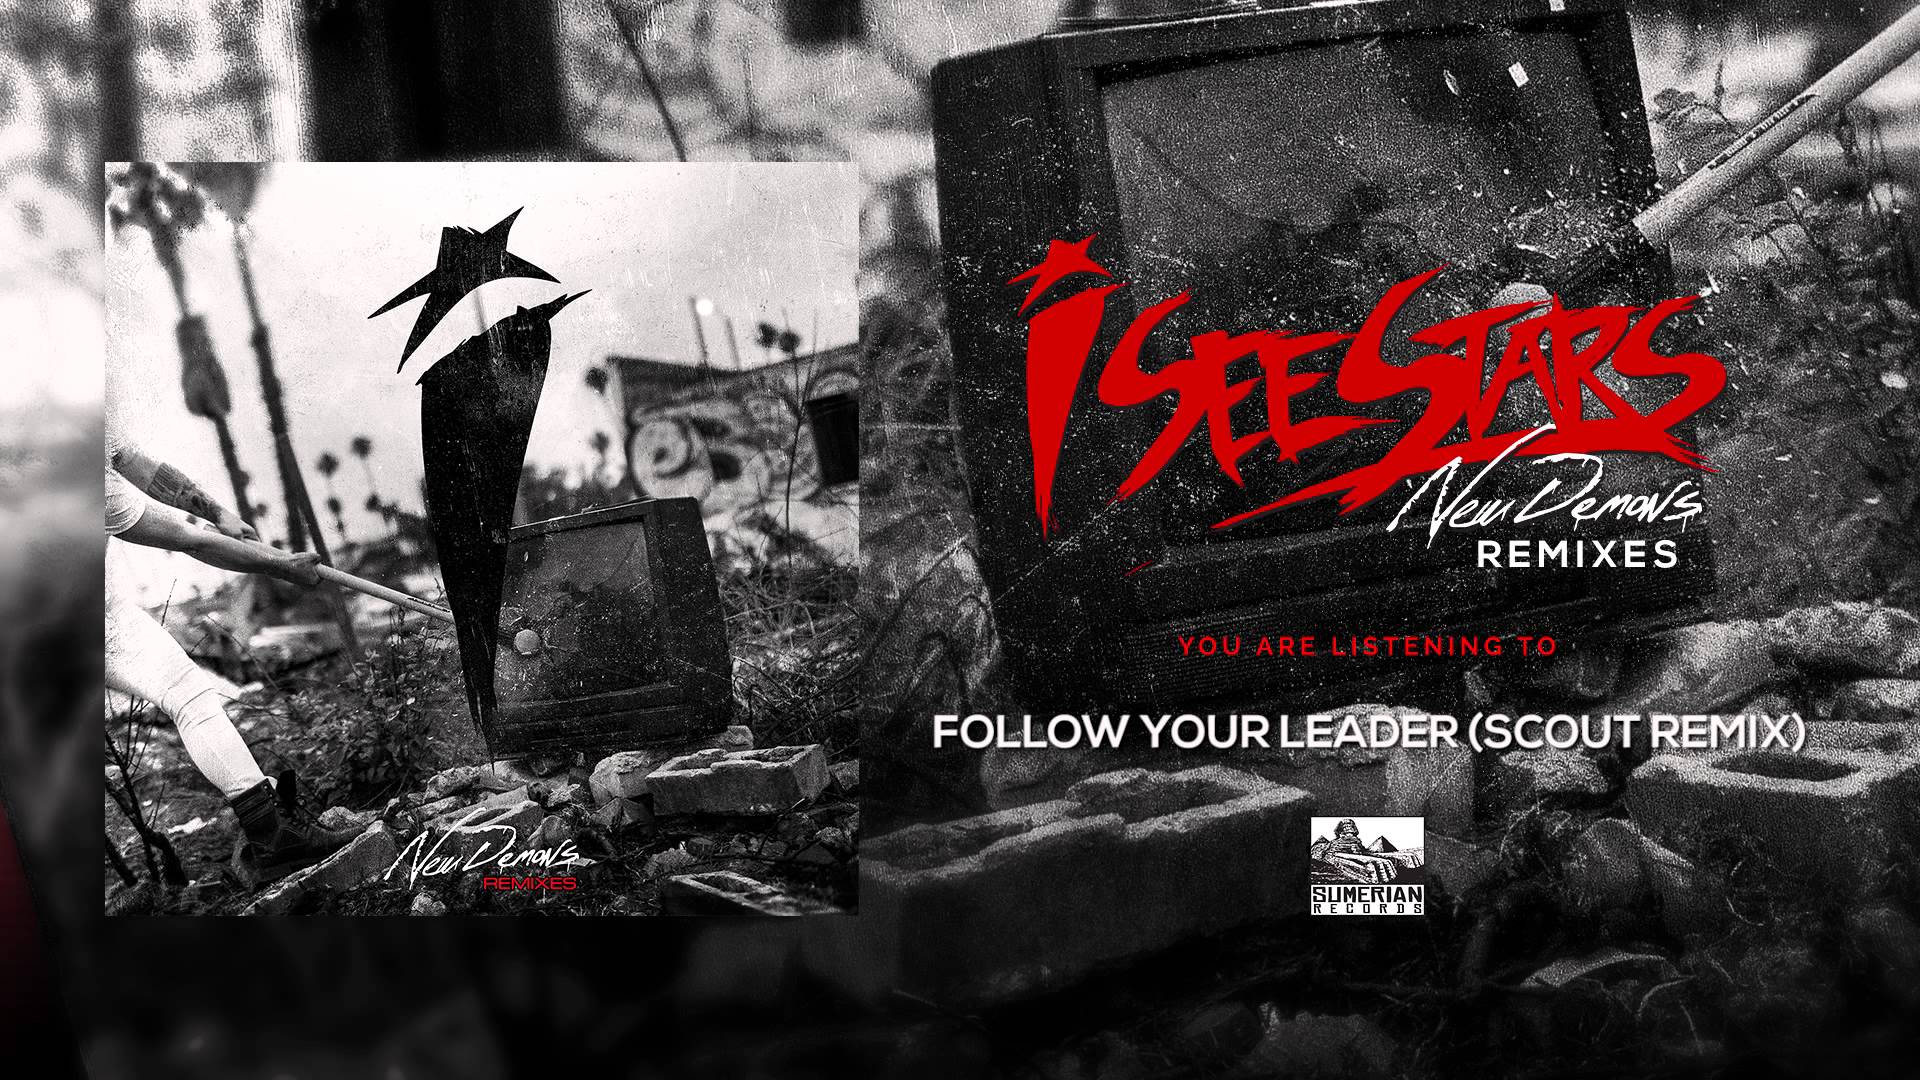 I SEE STARS - Follow Your Leader (Scout Remix) - YouTube